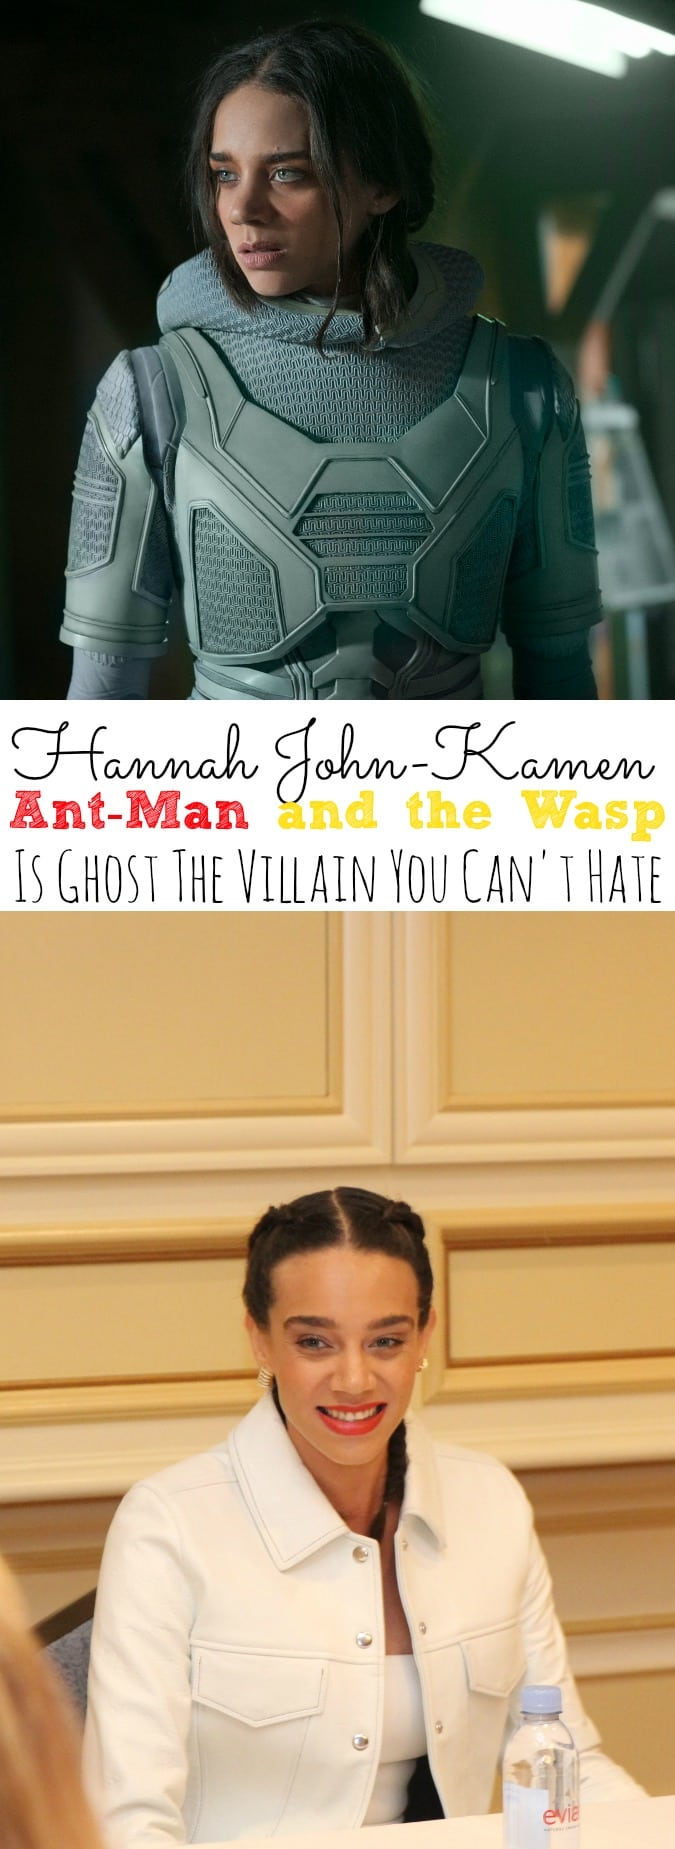 Hannah John-Kamen Interview Ant-Man and the Wasp | The Villain You Can't Hate